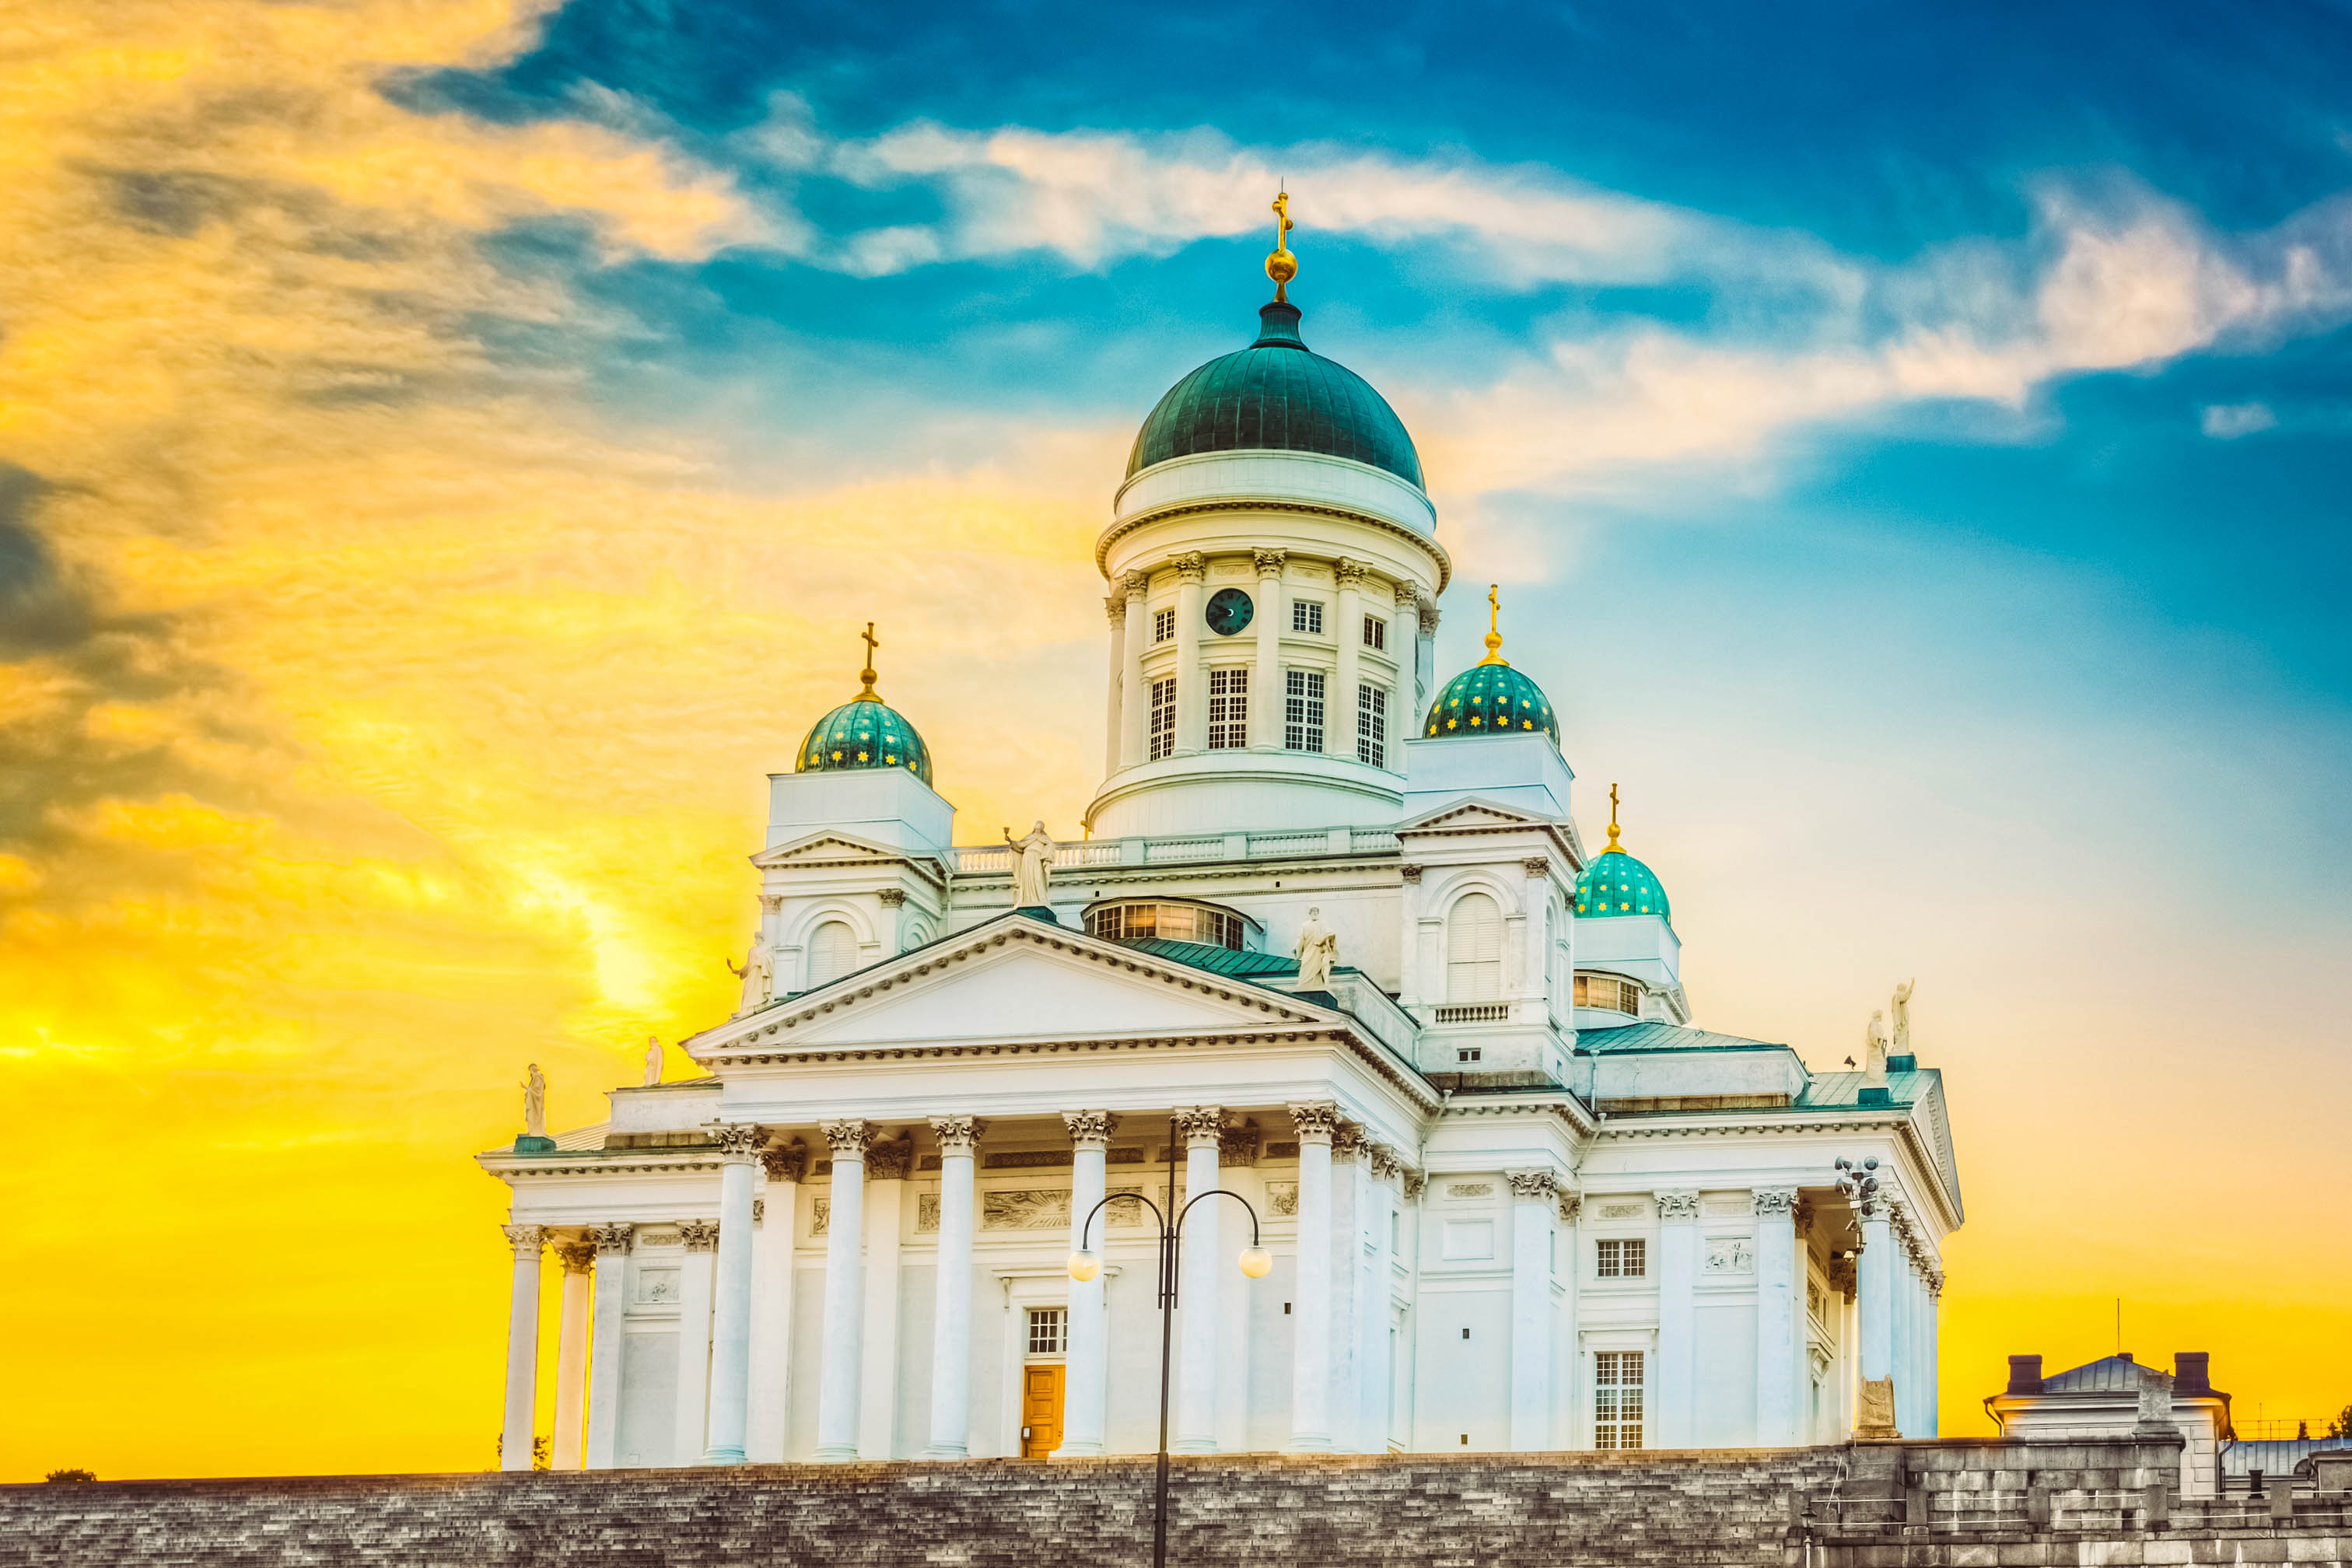 Famous Landmark In Finnish Capital: Senate Square With Lutheran Cathedral And Monument To Russian Emperor Alexander Ii At Summer Sunset Evening With Dramatic Sky